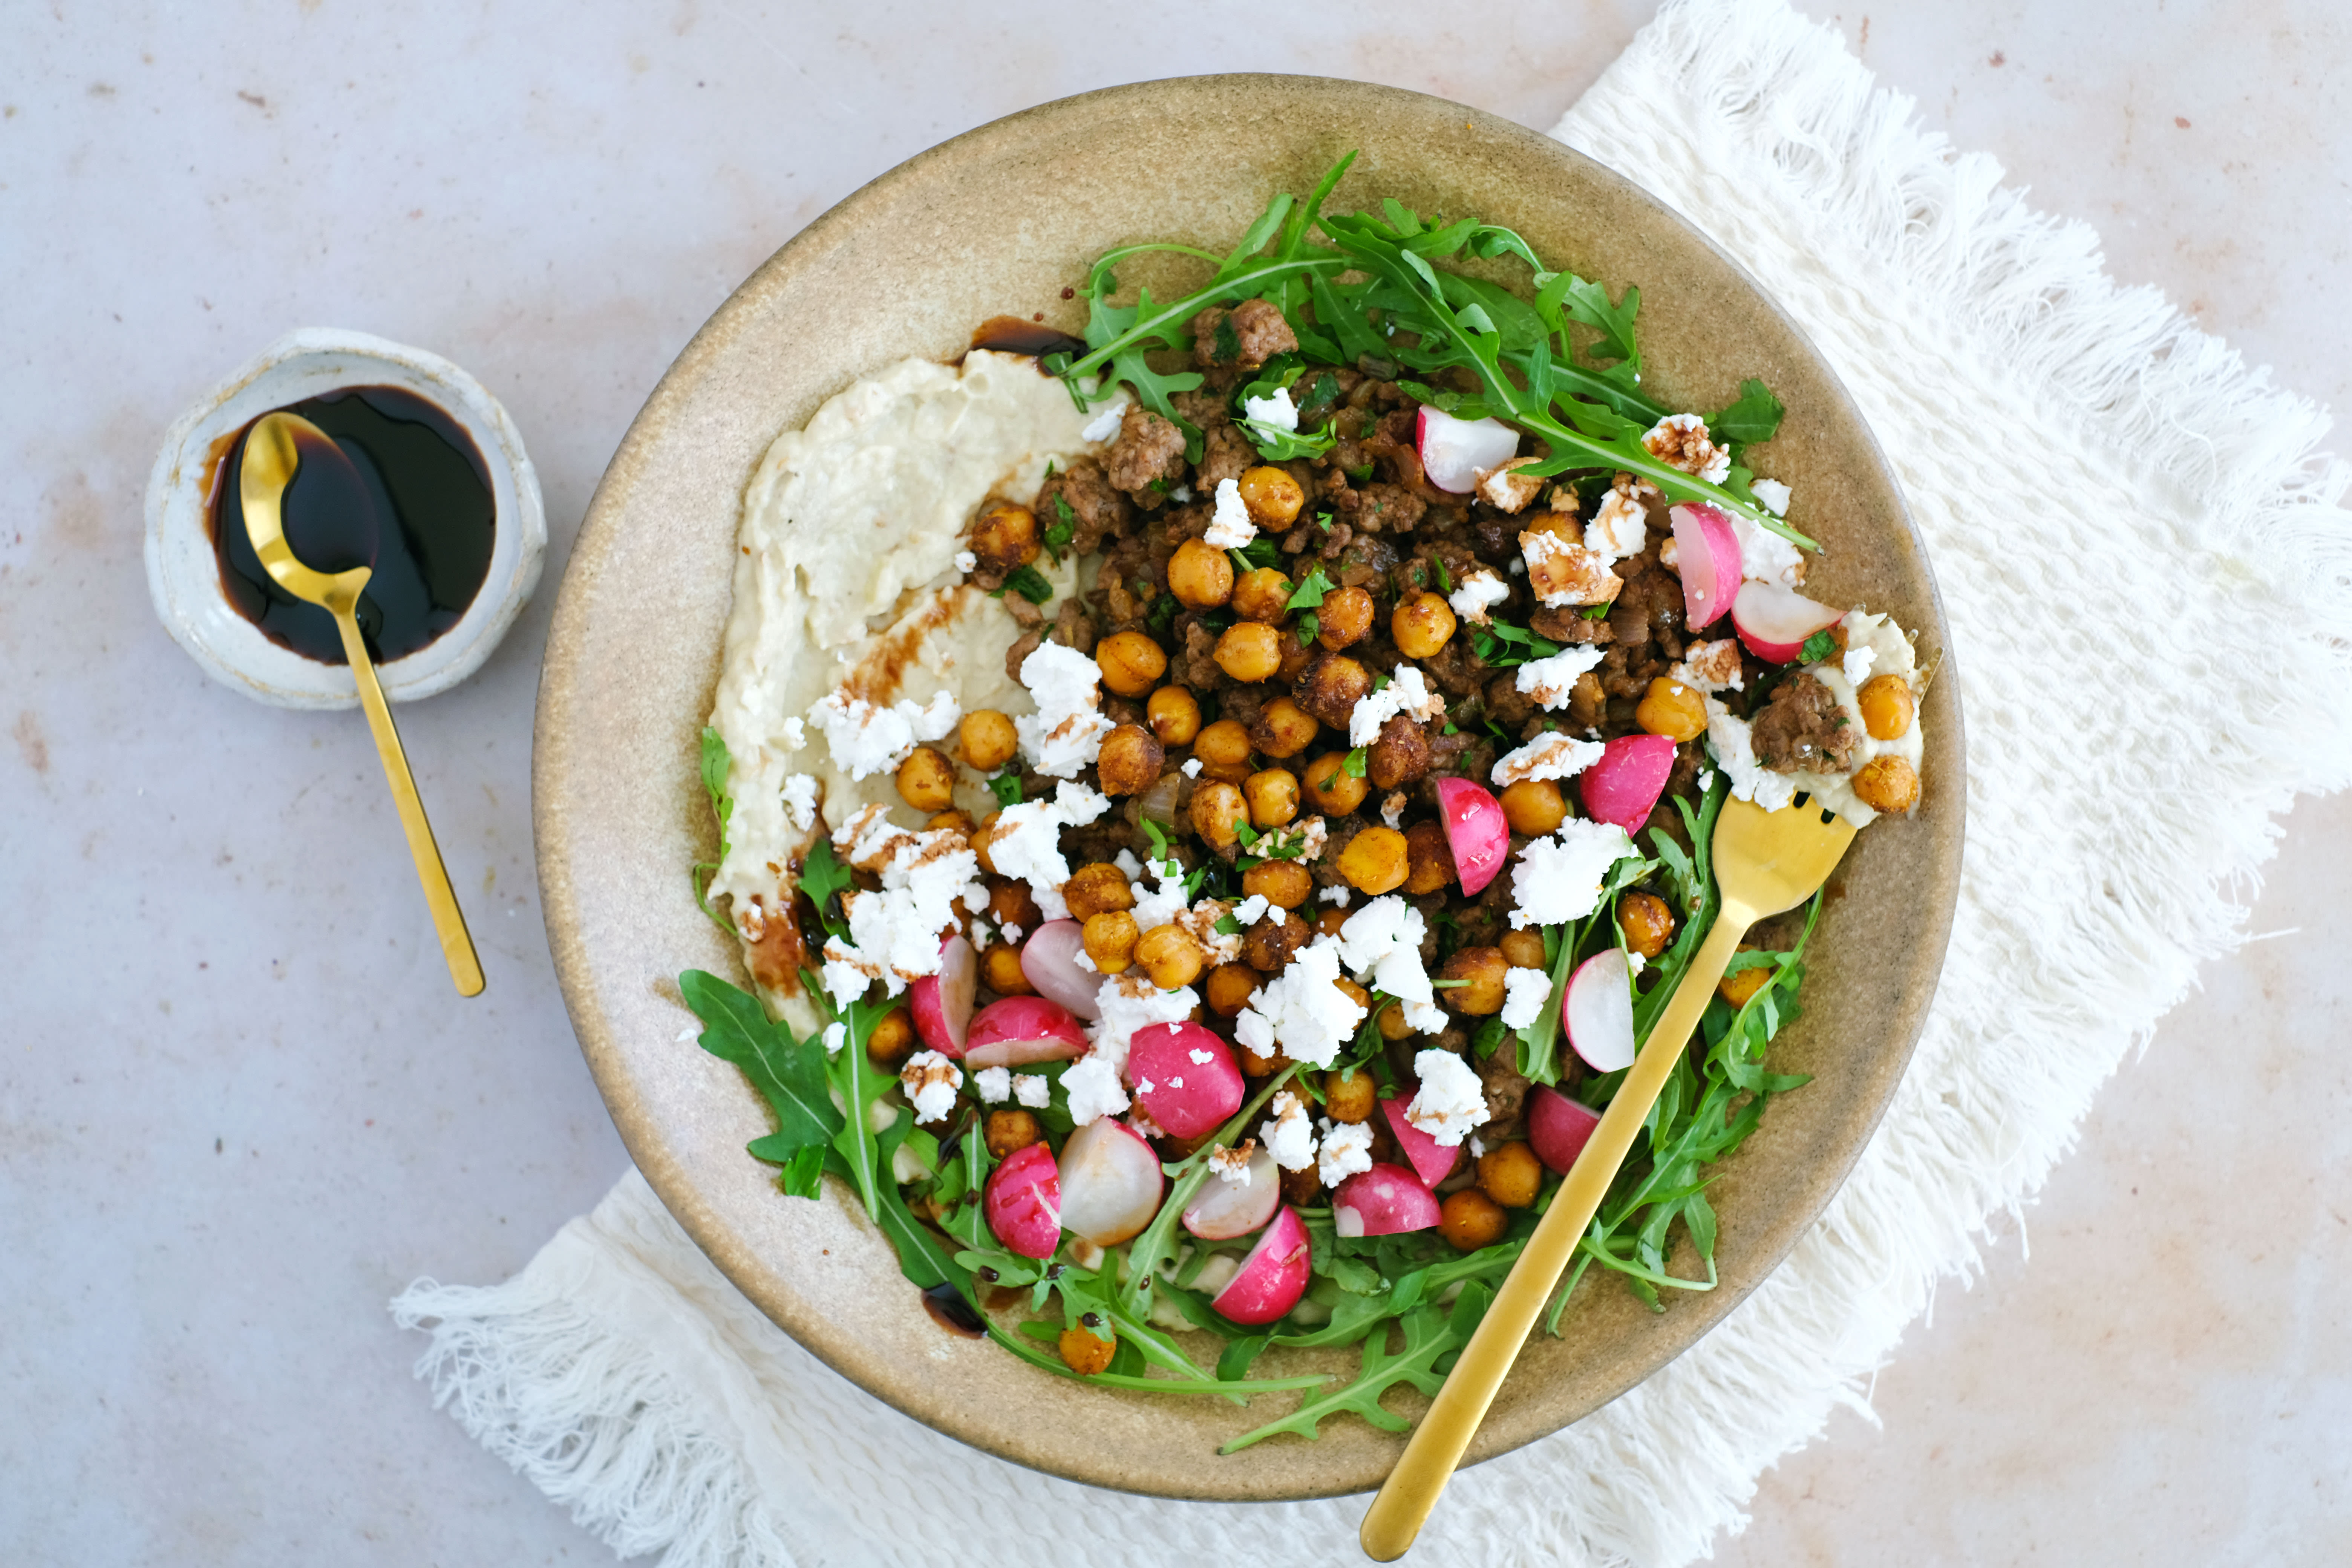 Middle Eastern Lamb and Chickpea Salad with Moutabal